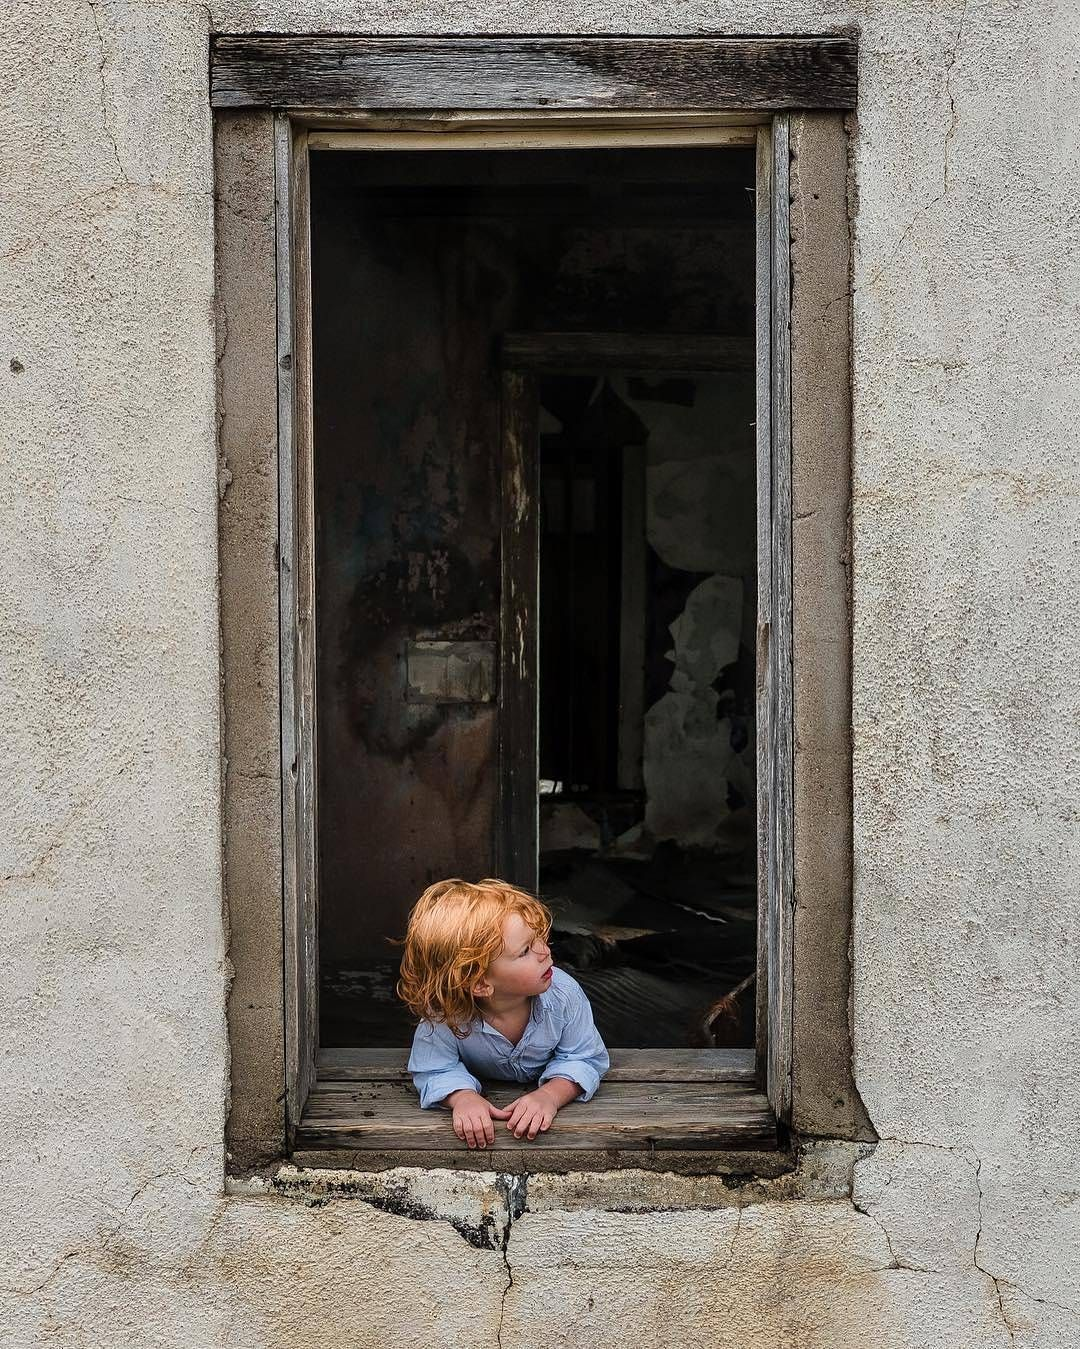 #Kentucky photographer Adrian Murray (@adriancmurray) stumbled upon this abandoned farmhouse in #Colorado en route to Idaho. Here his middle son takes a peek out the window. Follow along at @adriancmurray for more. To submit your images for consideration on our feed follow @childhoodeveryday and tag your photos #childhoodeveryday. // #documentary #documentaryphotography #familydocumentary #portrait #portraits #portraitphotography